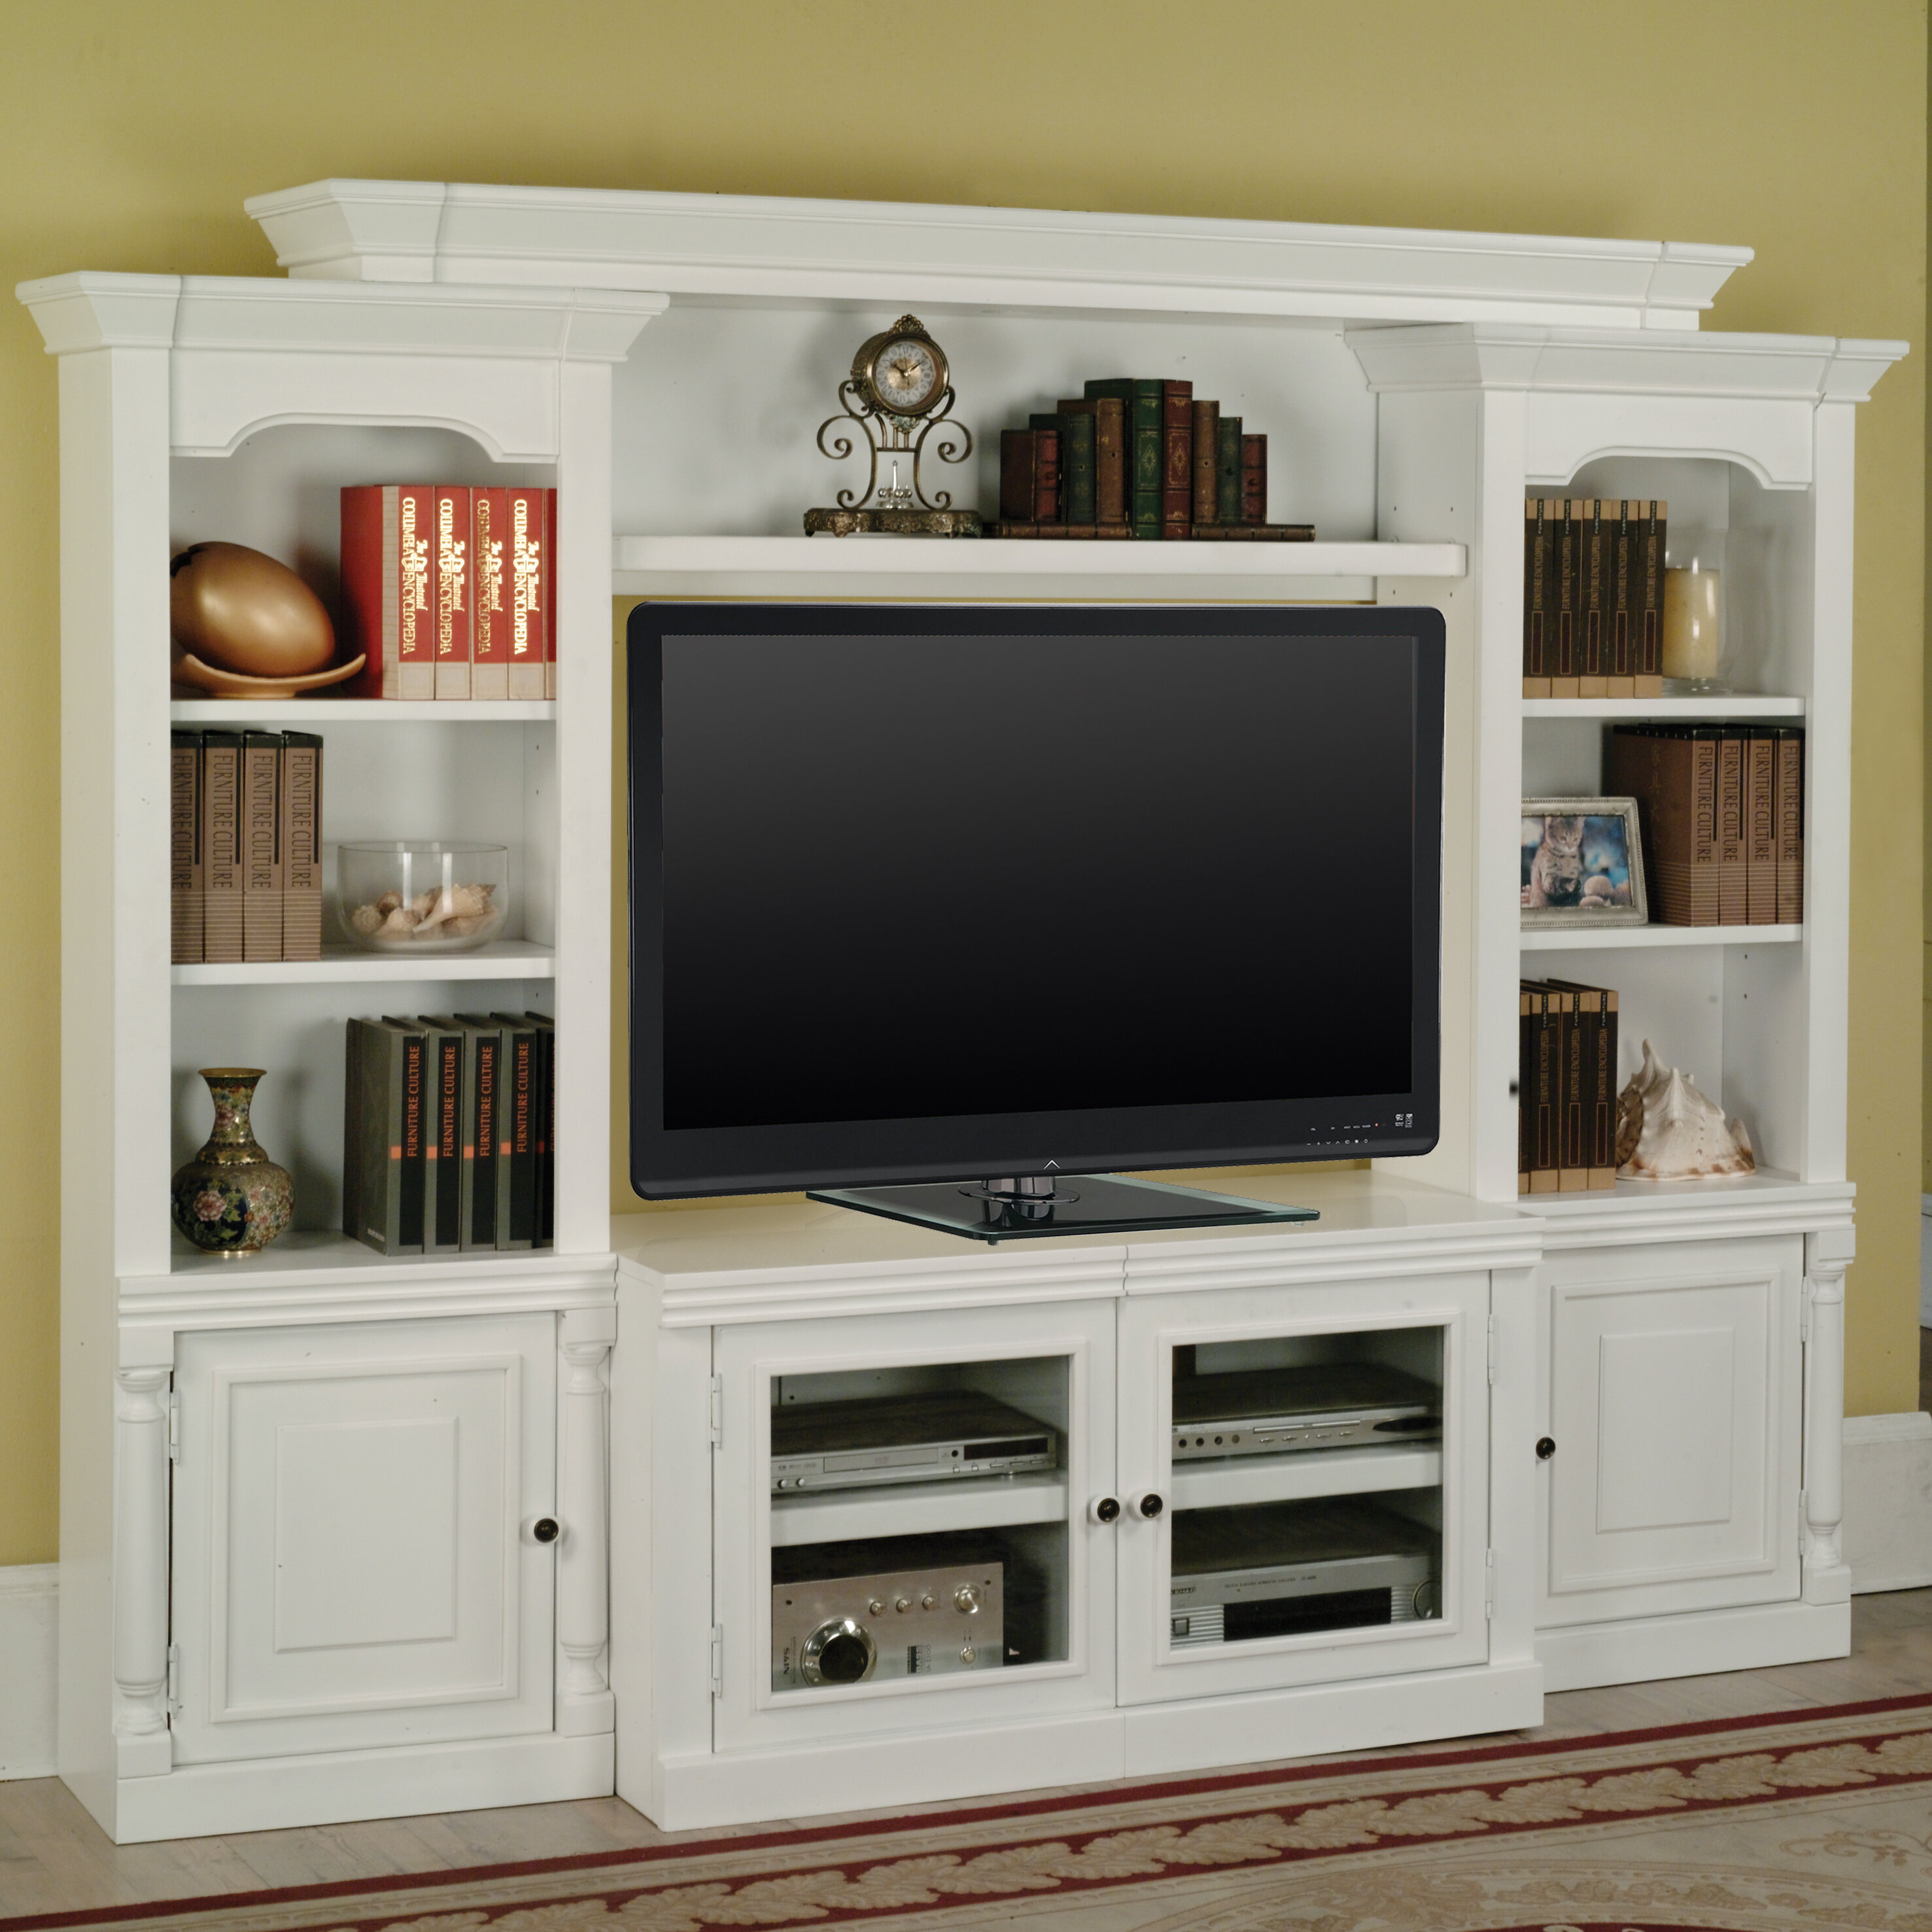 Darby Home Co Centerburg Entertainment Center For Tvs Up To 65 Reviews Wayfair